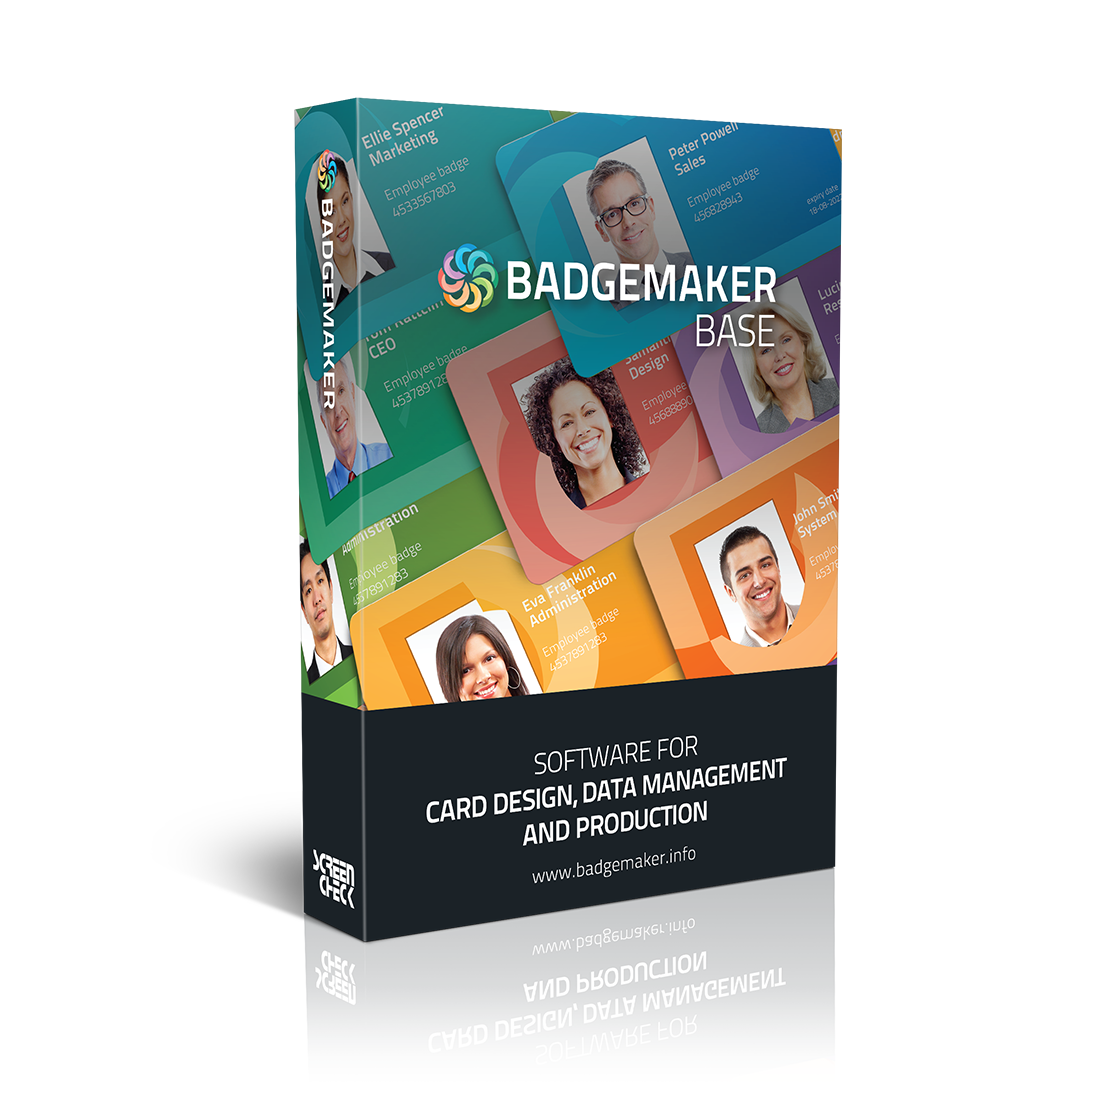 badgemaker base id software get badgemaker